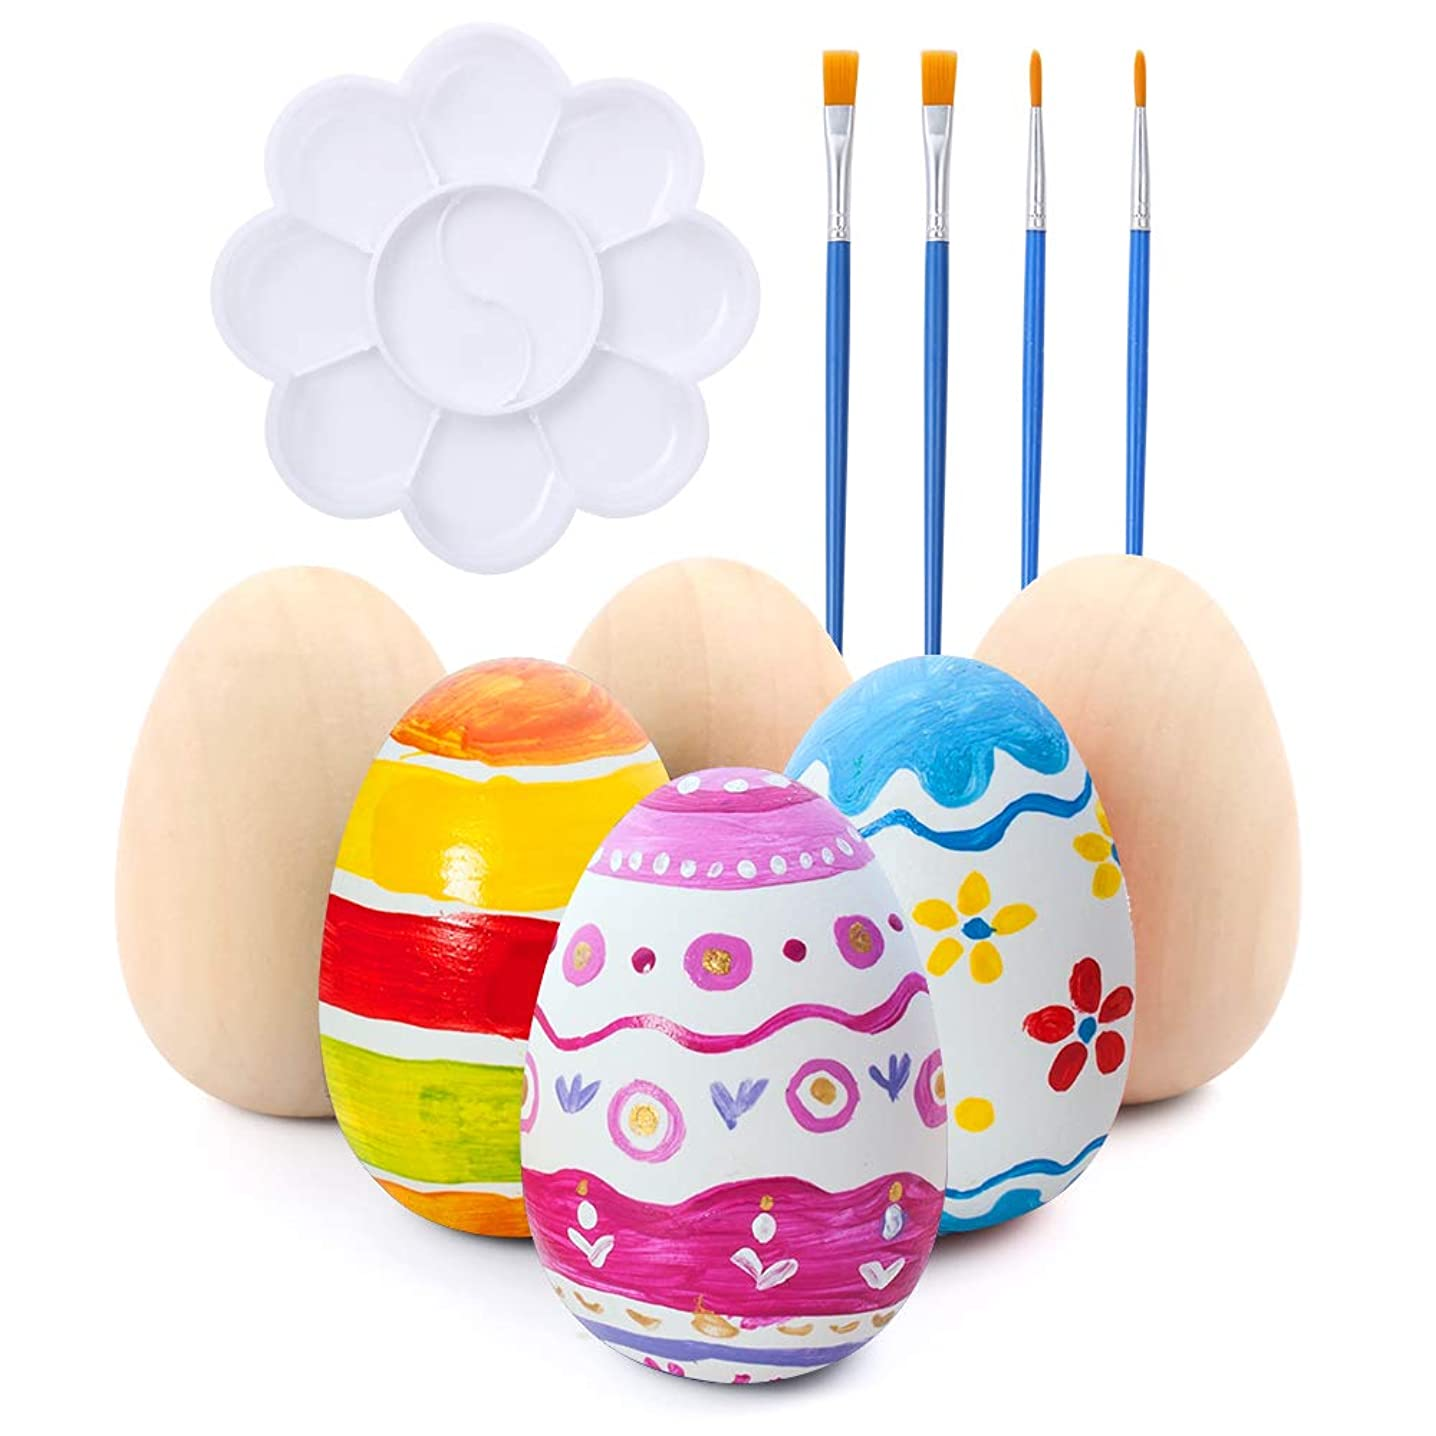 Caydo 6 Pieces Unpainted Wooden Eggs for Easter Crafts with 2 Pieces Flat Print Brush, 2 Pieces Script Liner Brush and 1 Pieces Color Palette for Easter Crafts DIY Painting and Displays